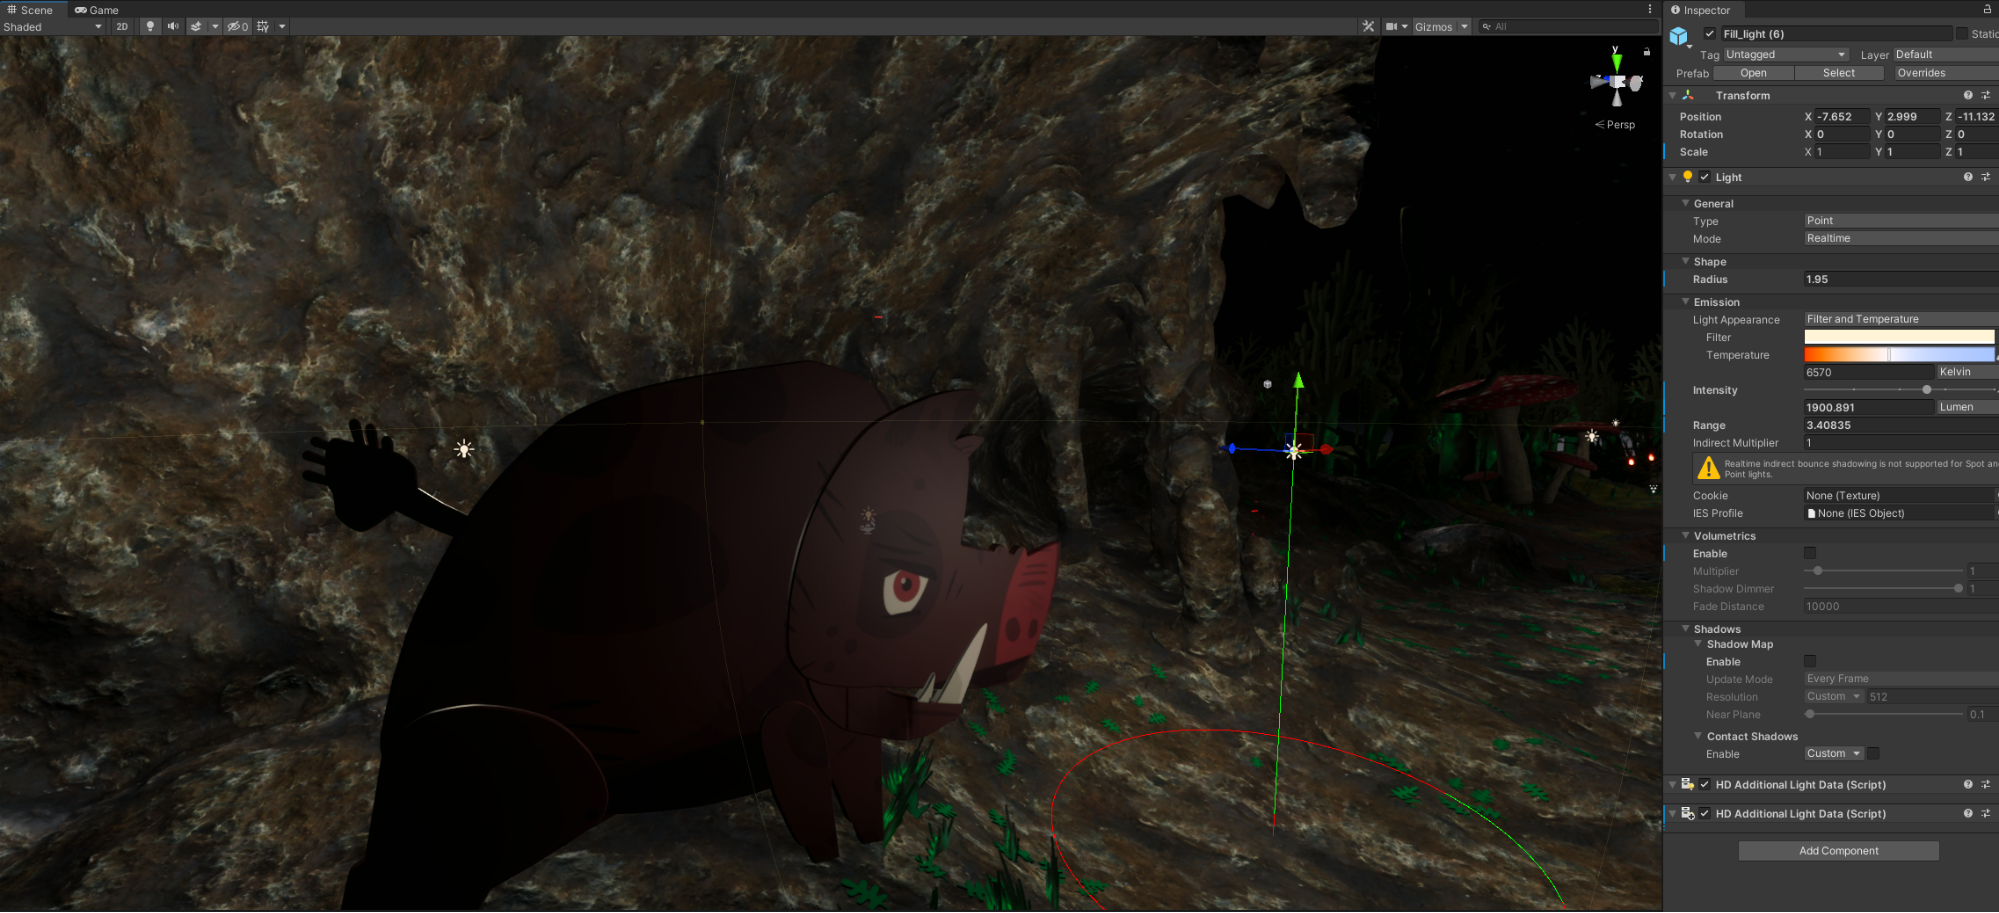 The project inside Unity. A woolly mammoth type creature is on screen